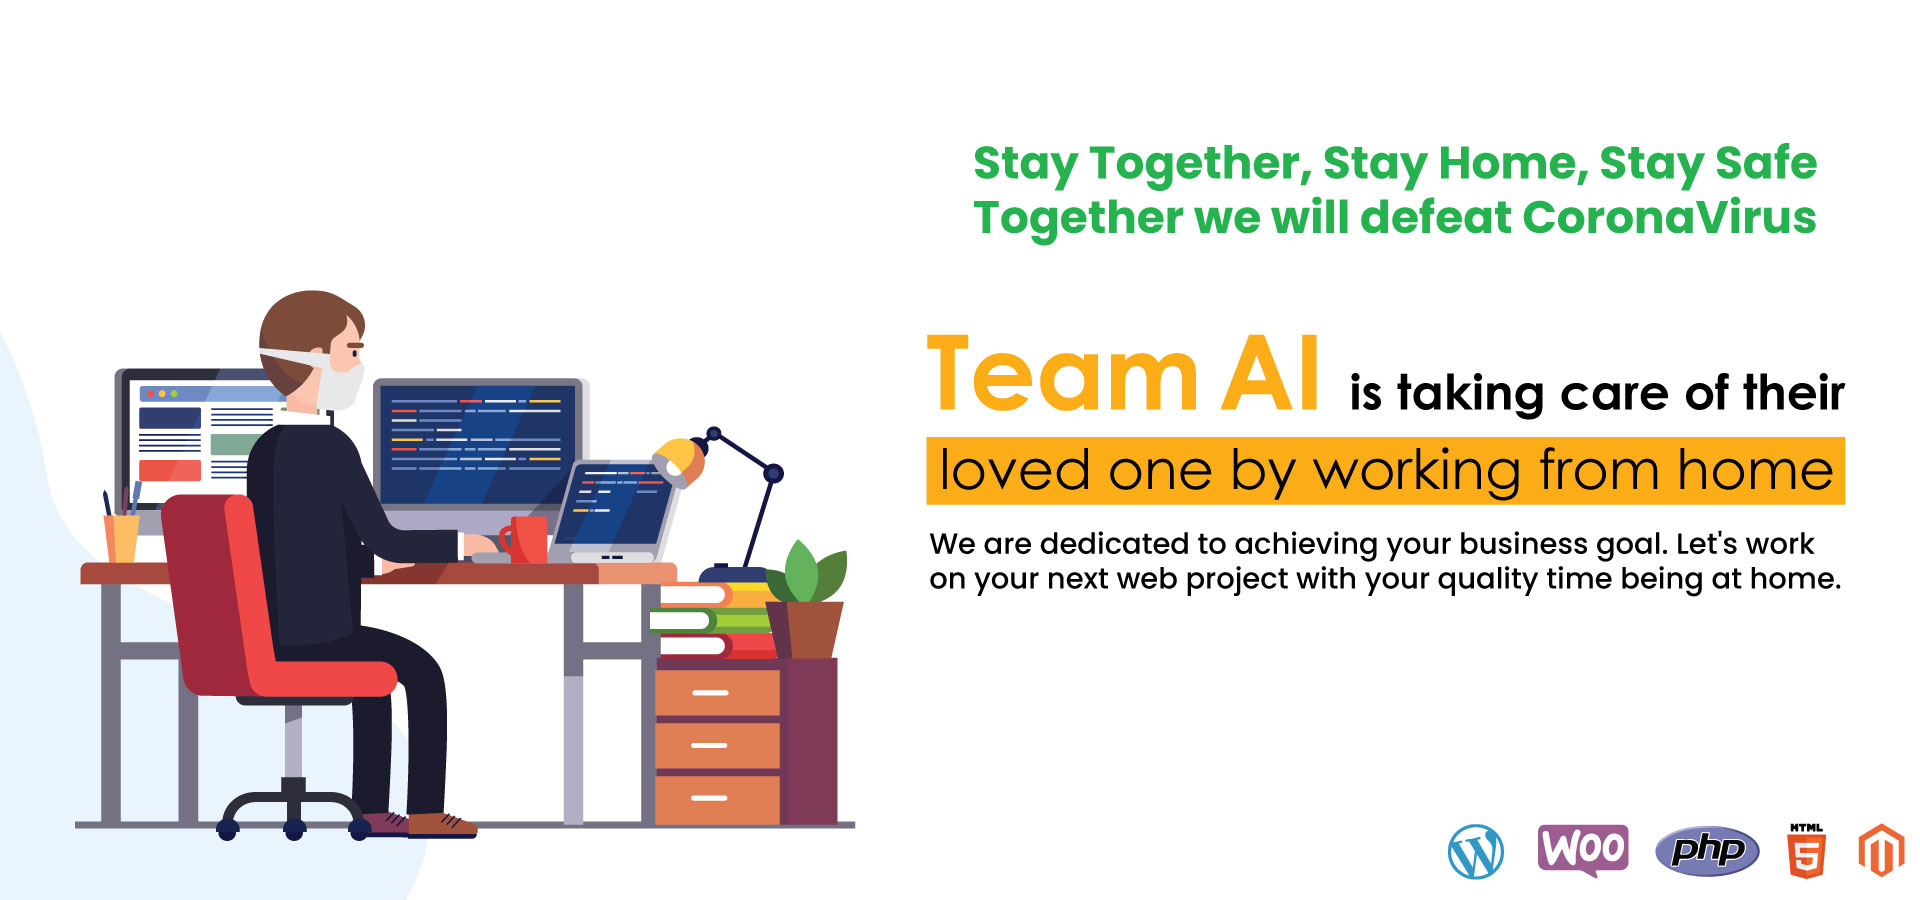 Team AI is taking care of their loved one by working from home